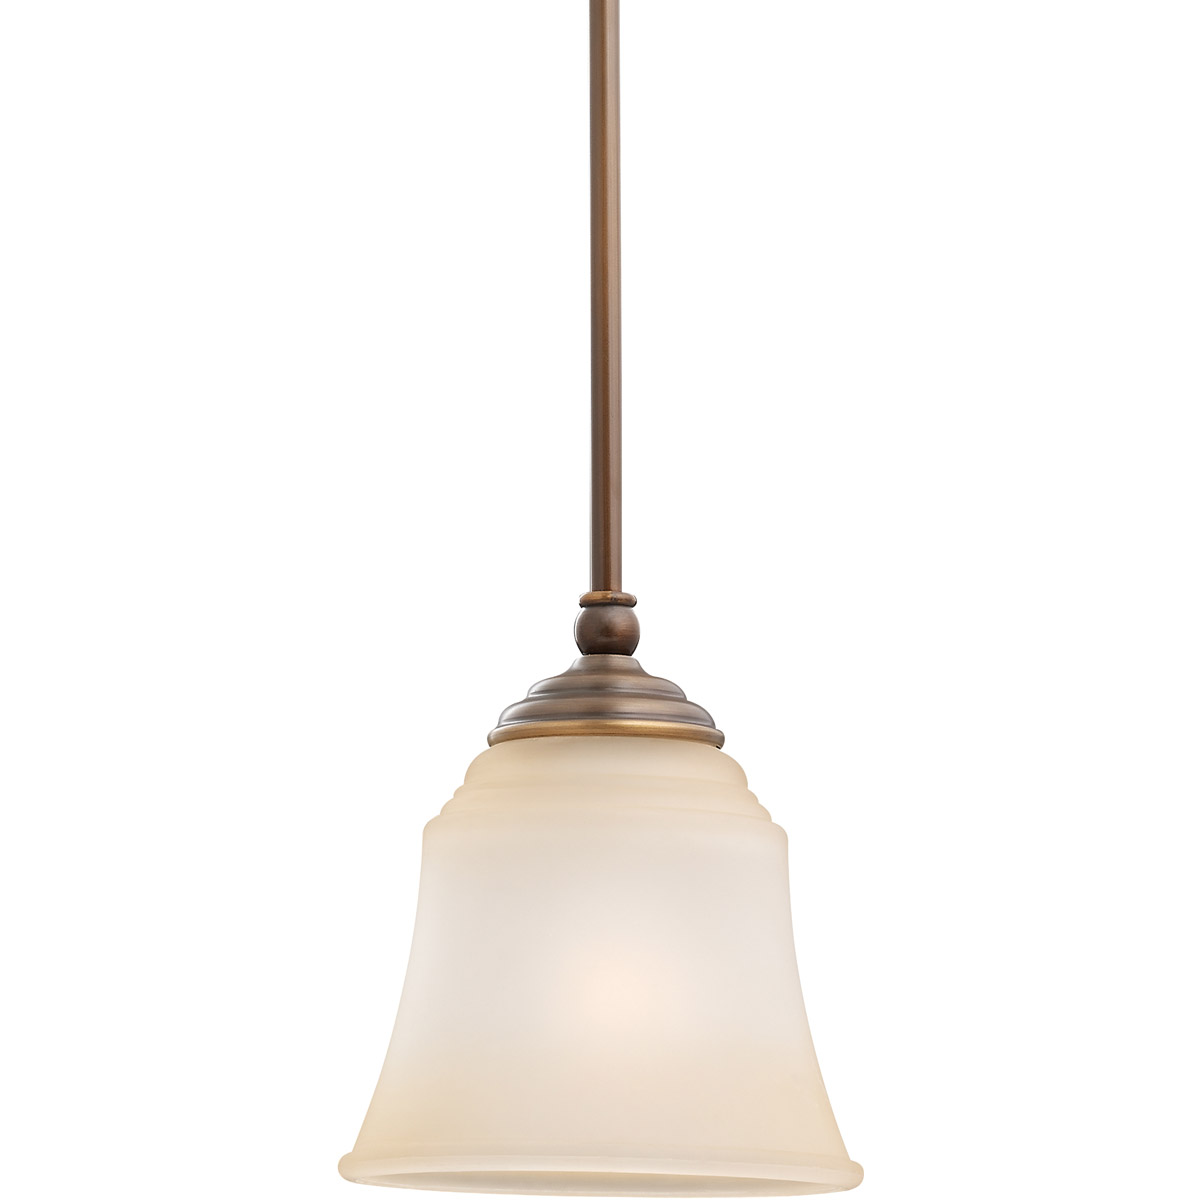 Sea Gull Lighting Parkview 1 Light Mini Pendant in Russet Bronze 61380-829 photo